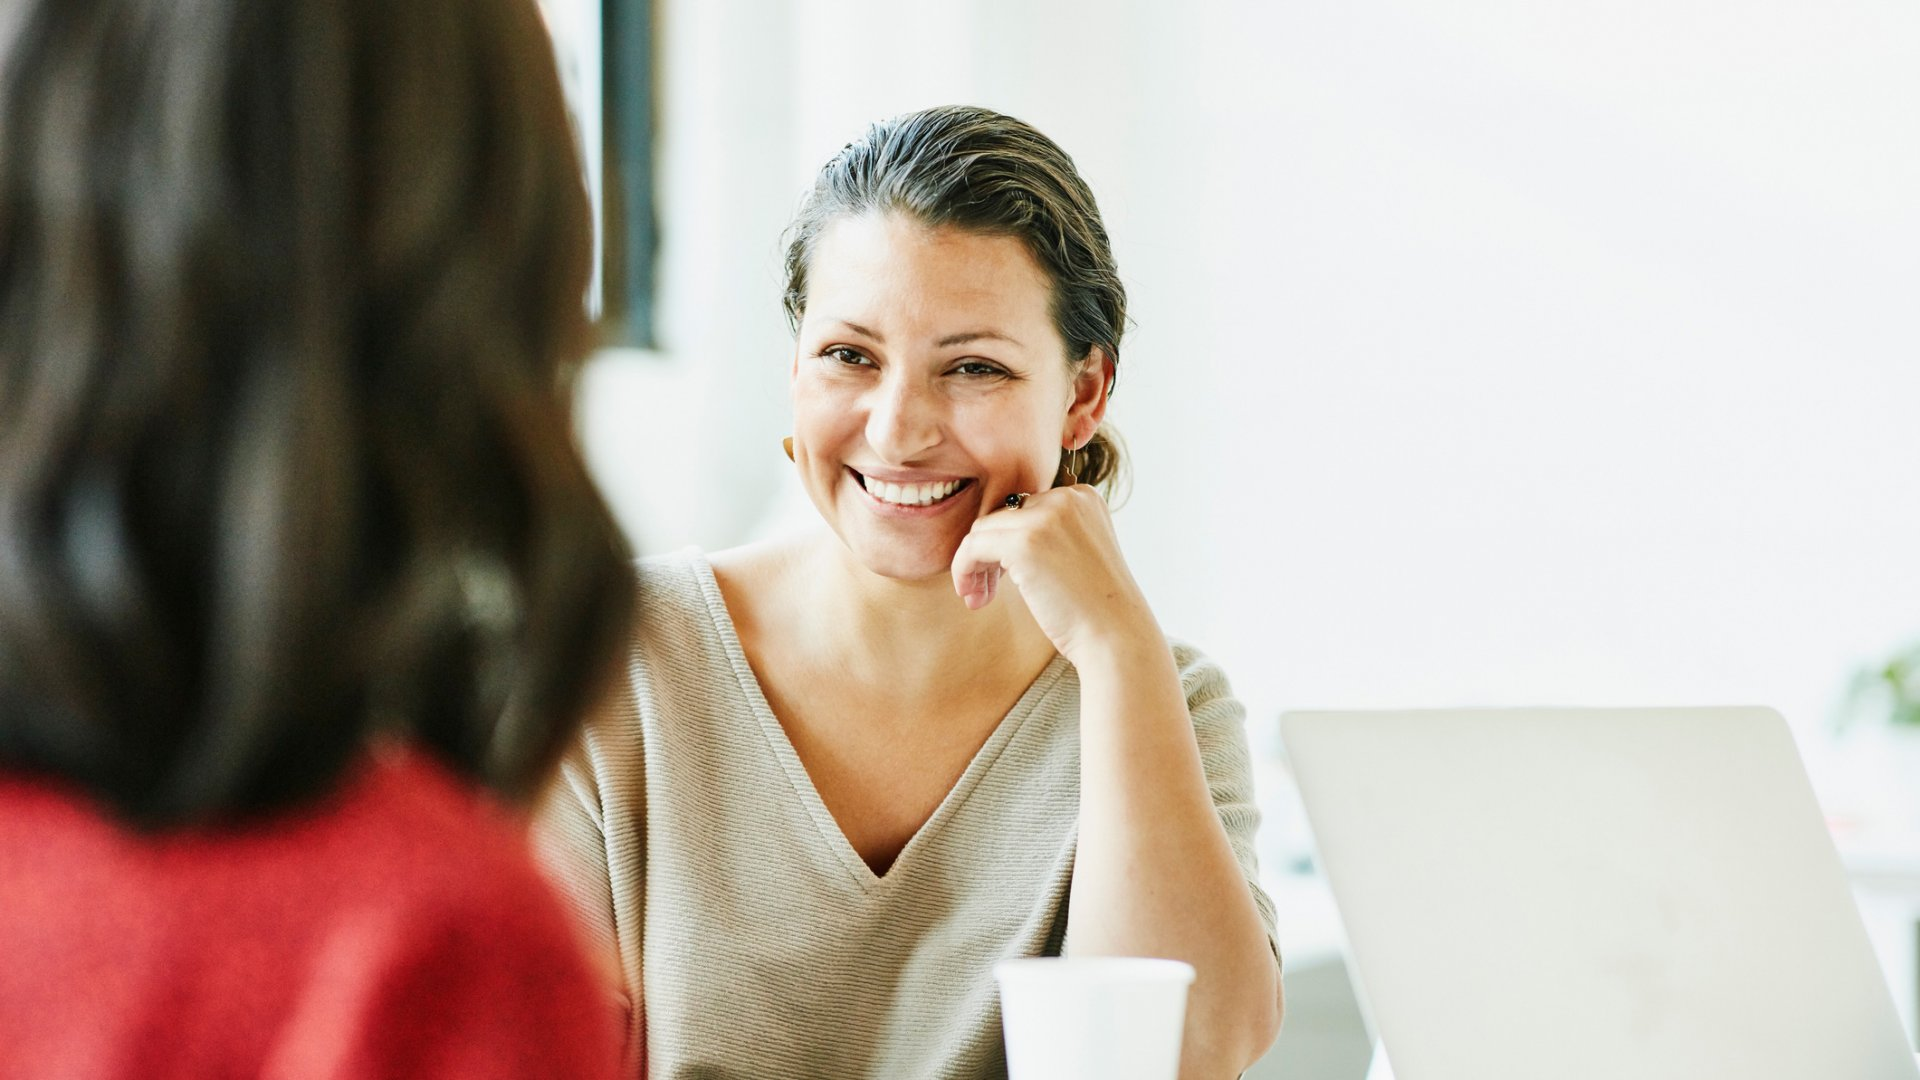 3 Questions to Skip Small Talk and Build Real Connections